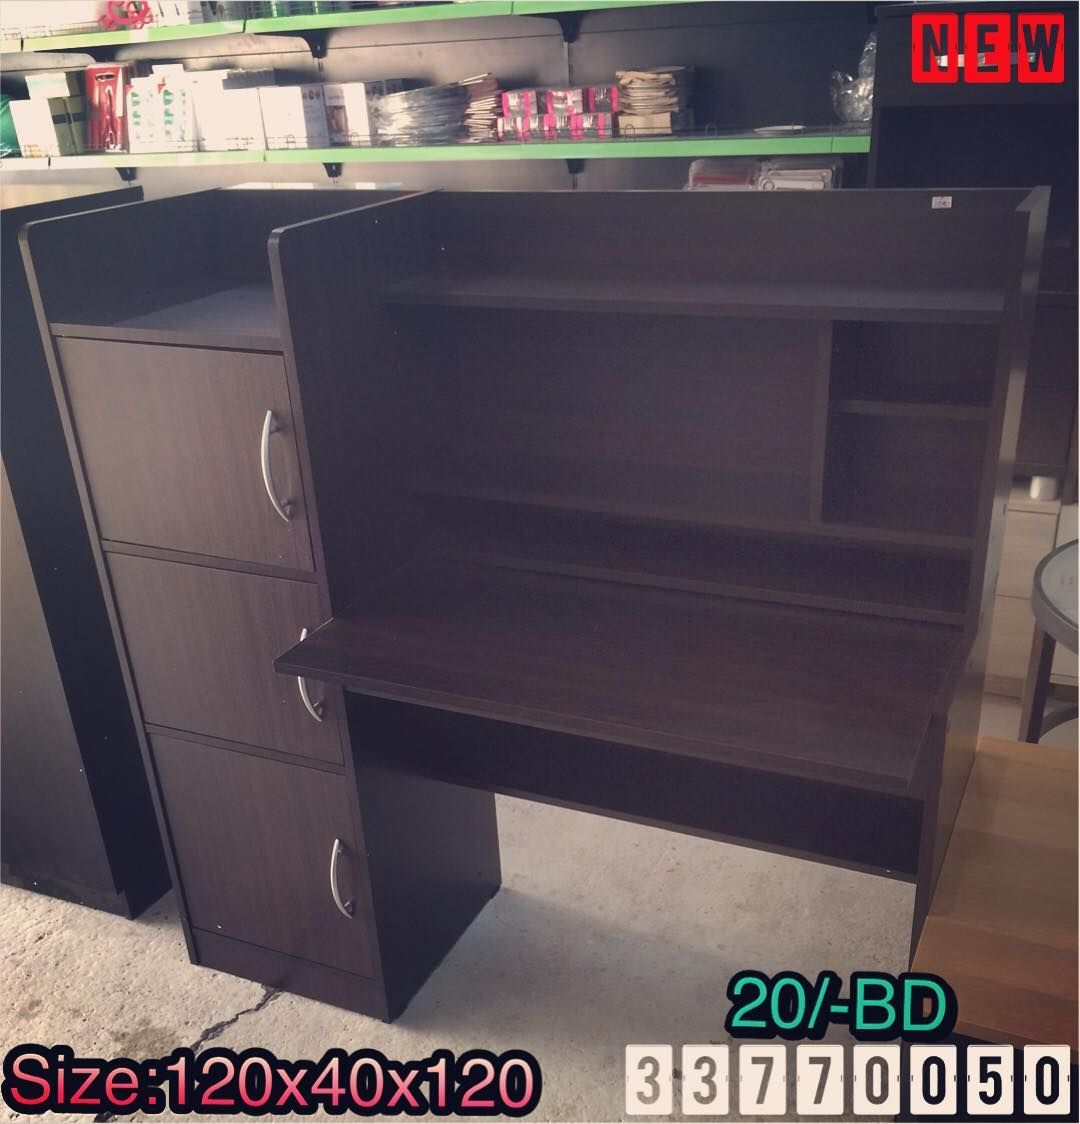 For Sale Study Table Size 120x40x120 Brown Color New Price 20 Bd للبيع مكتب دراسي خشب لون بني جديد السعر 20 Bd Tel 33770050 Tel 66992443 In 2020 Mew